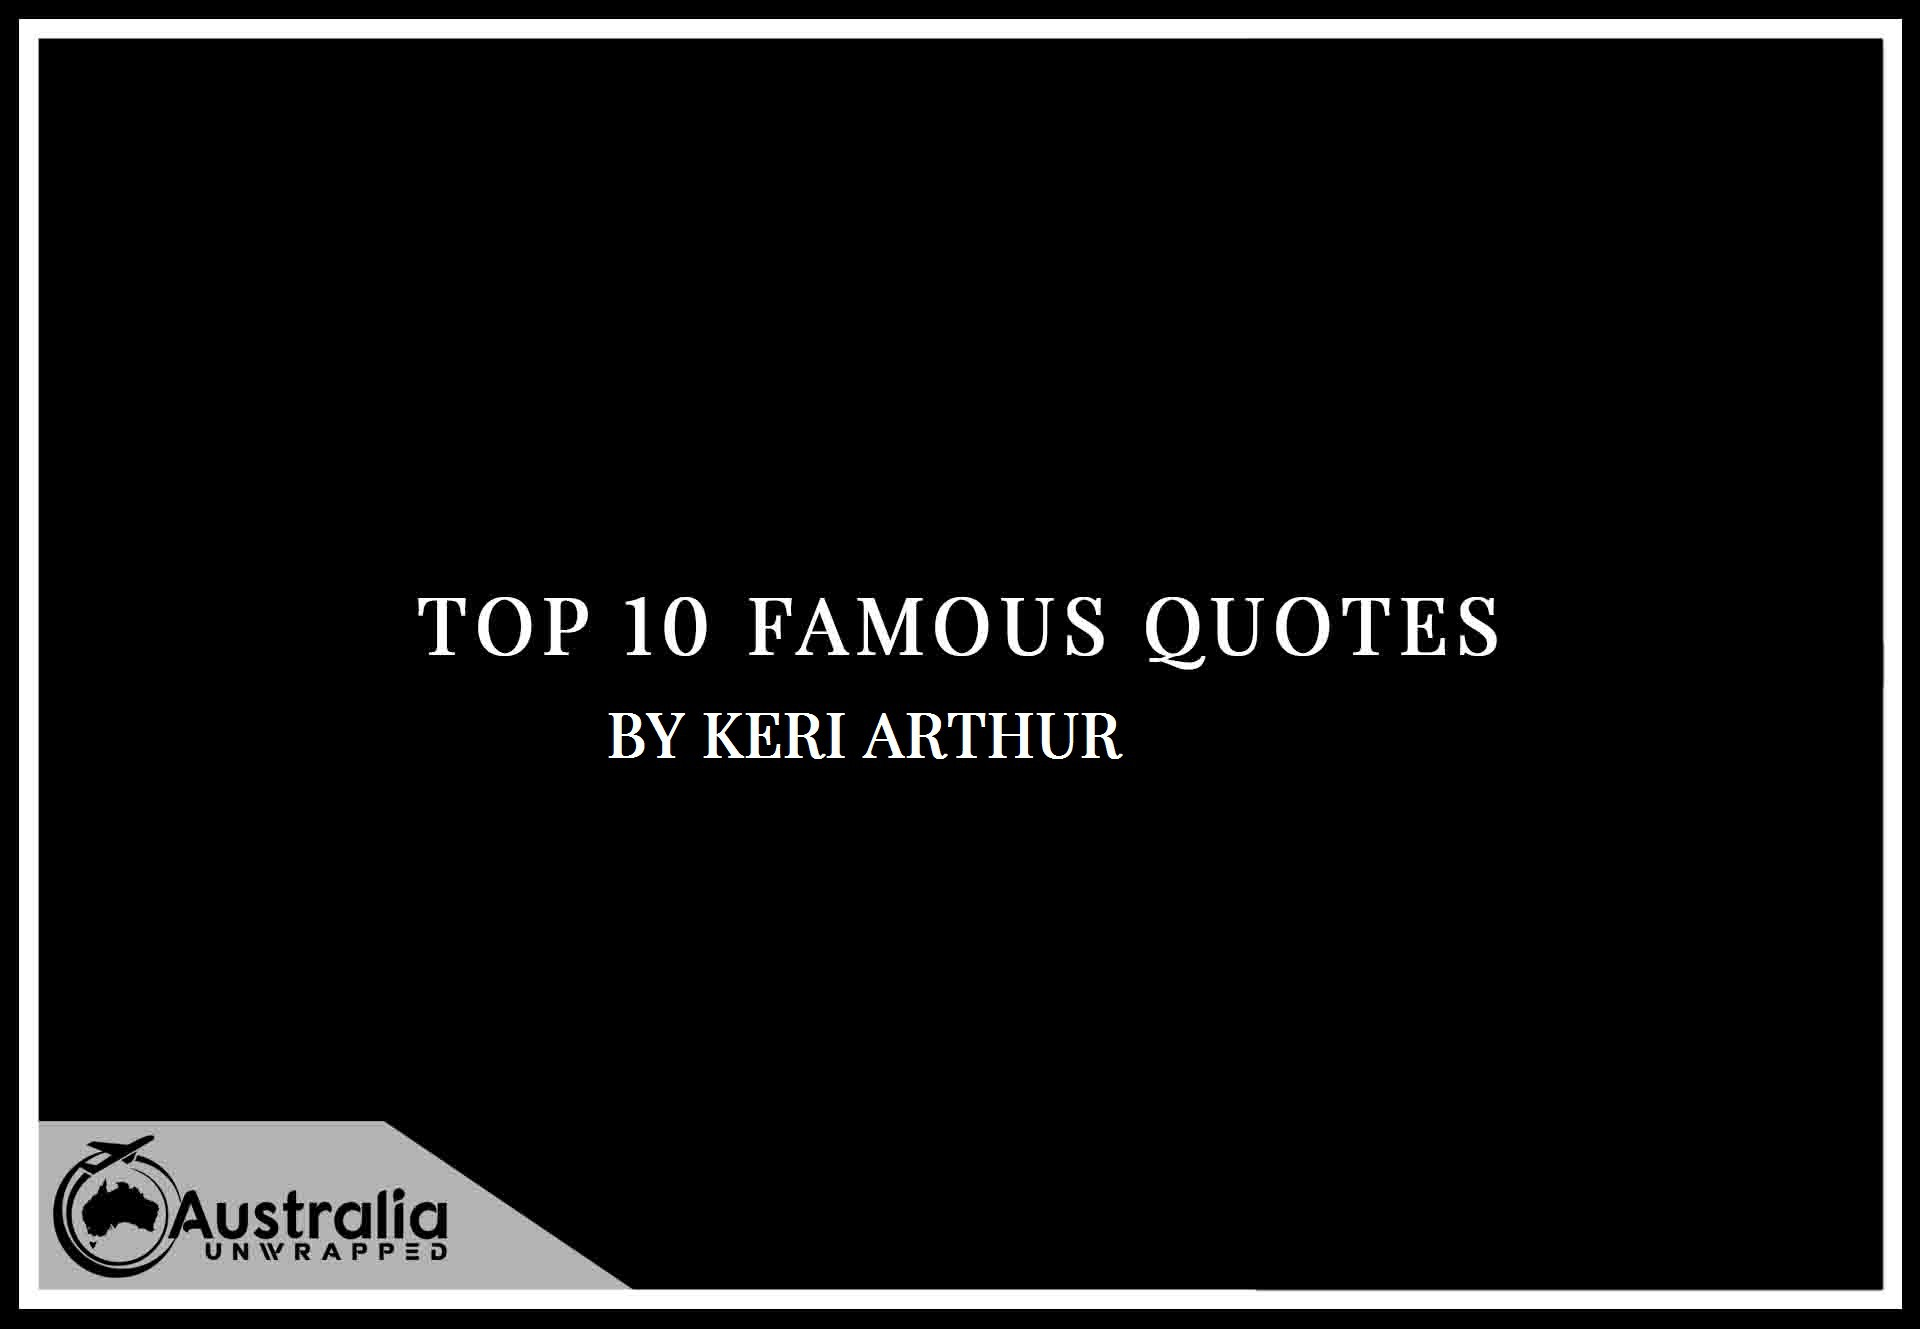 Keri Arthur's Top 10 Popular and Famous Quotes